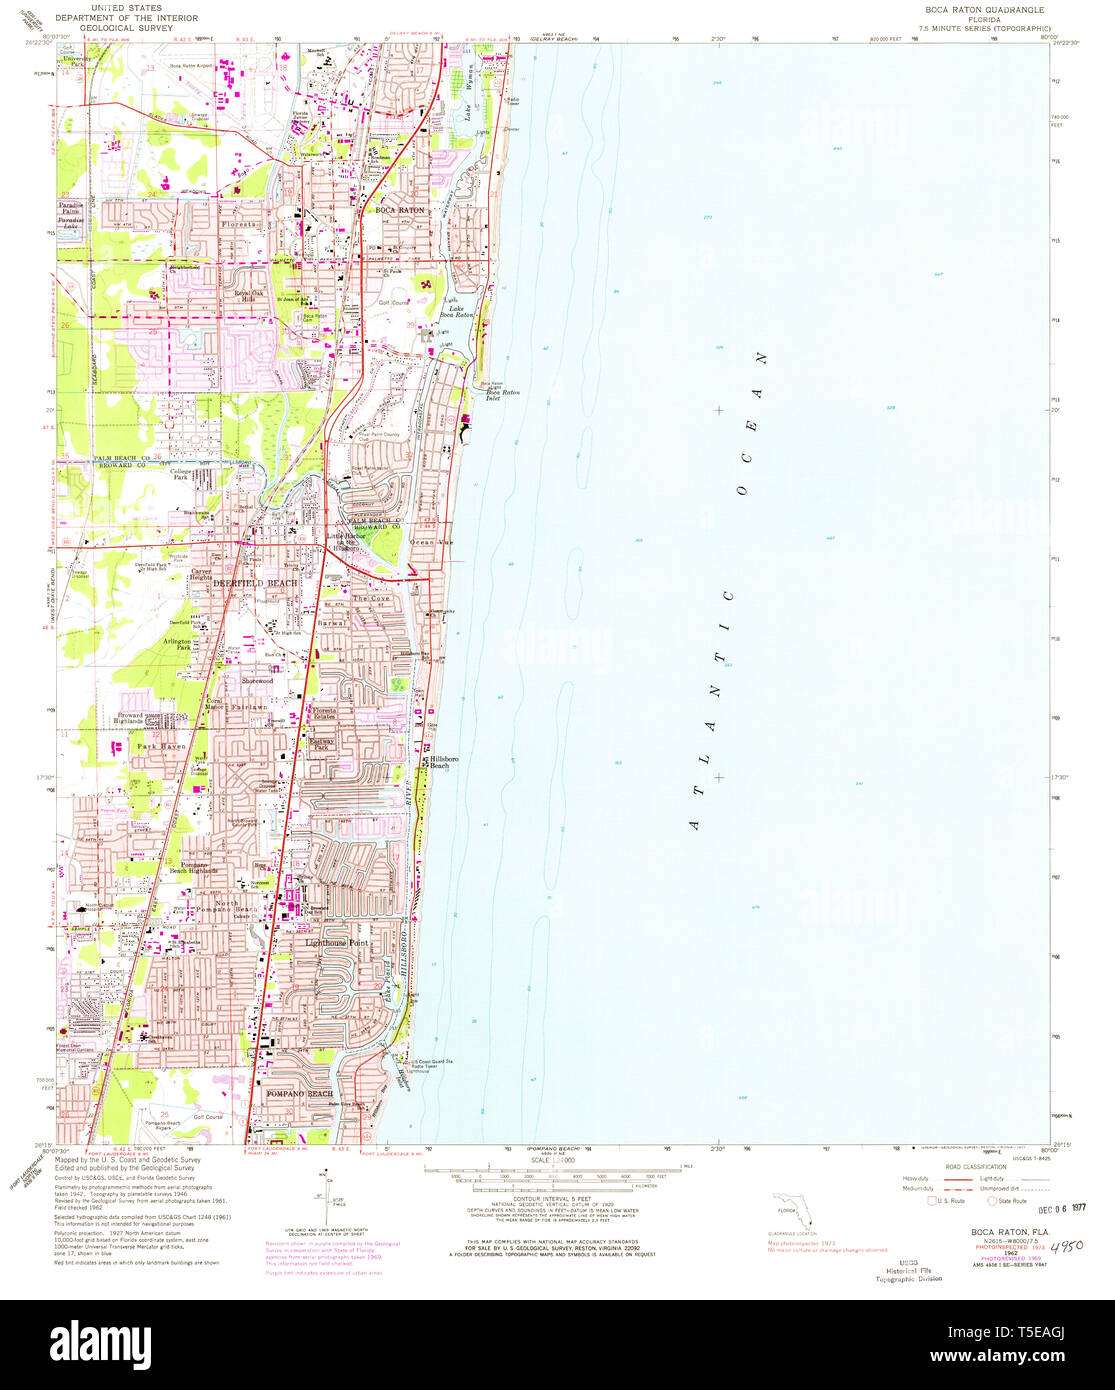 Map Of Florida Showing Boca Raton.Usgs Topo Map Florida Fl Boca Raton 345234 1962 24000 Restoration